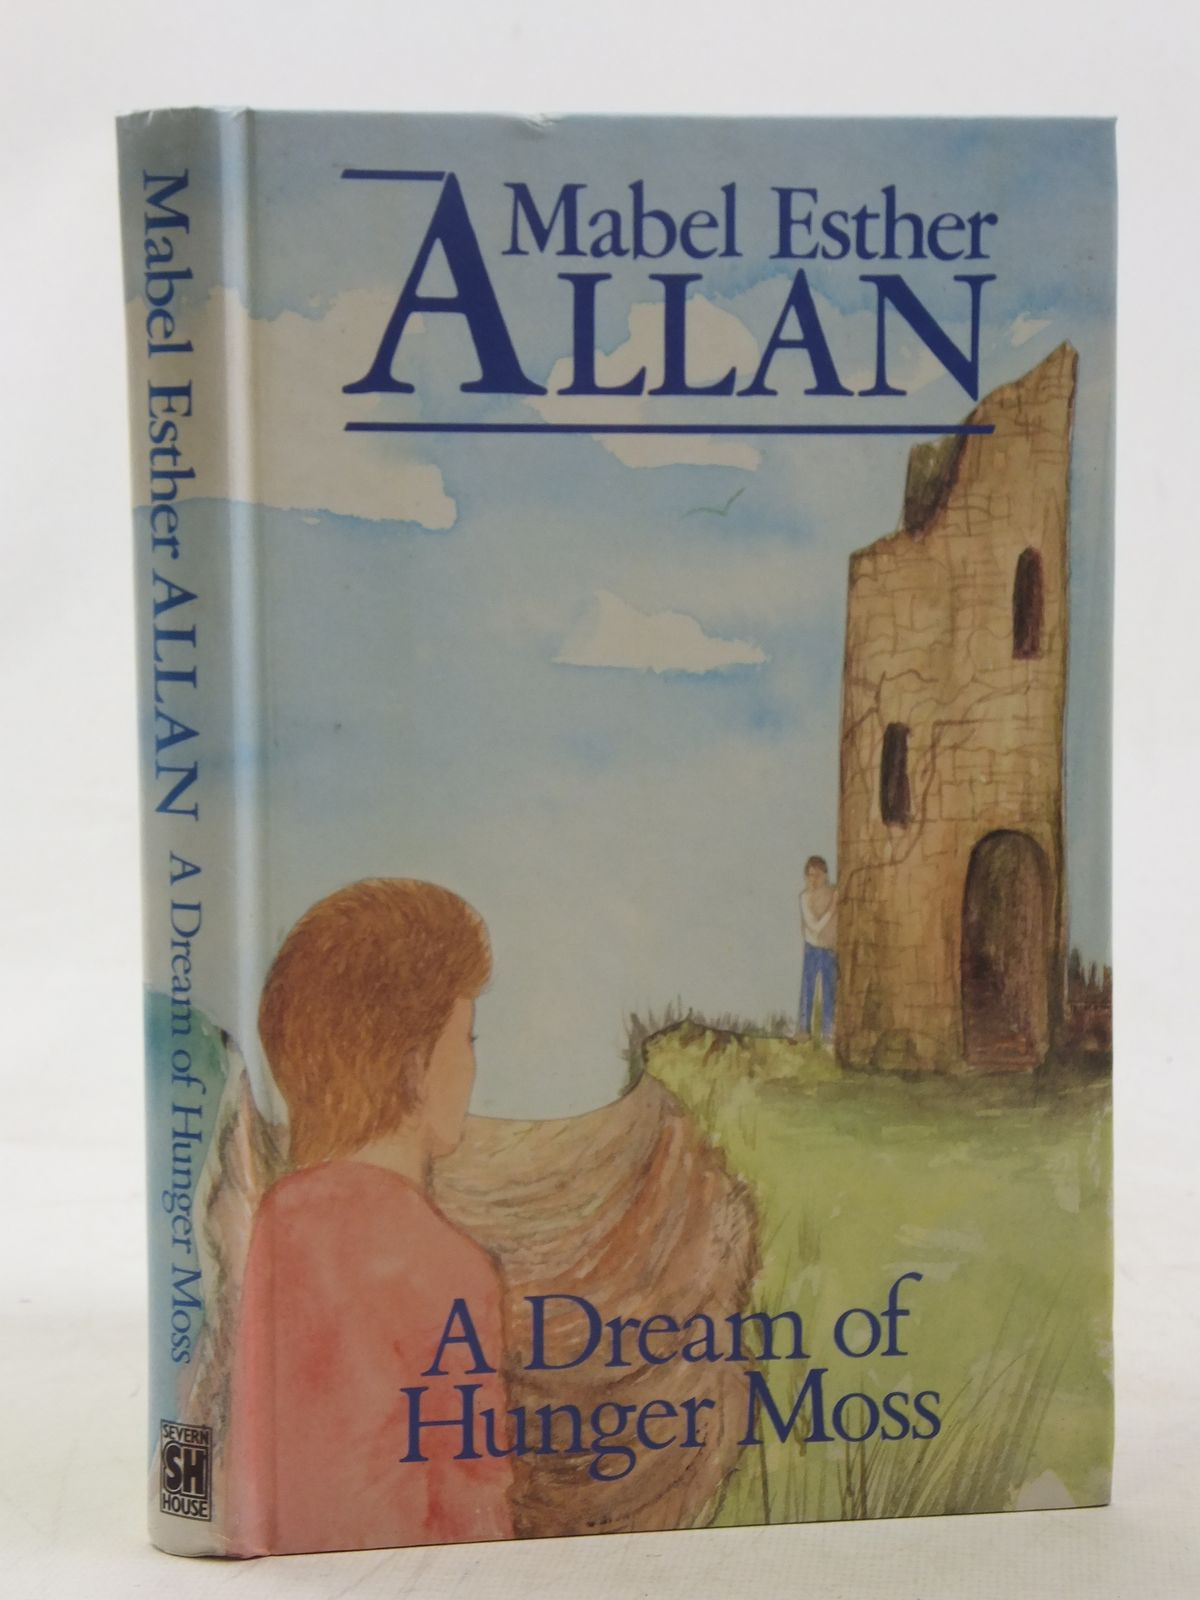 Photo of A DREAM OF HUNGER MOSS written by Allan, Mabel Esther published by Severn House (STOCK CODE: 2117235)  for sale by Stella & Rose's Books